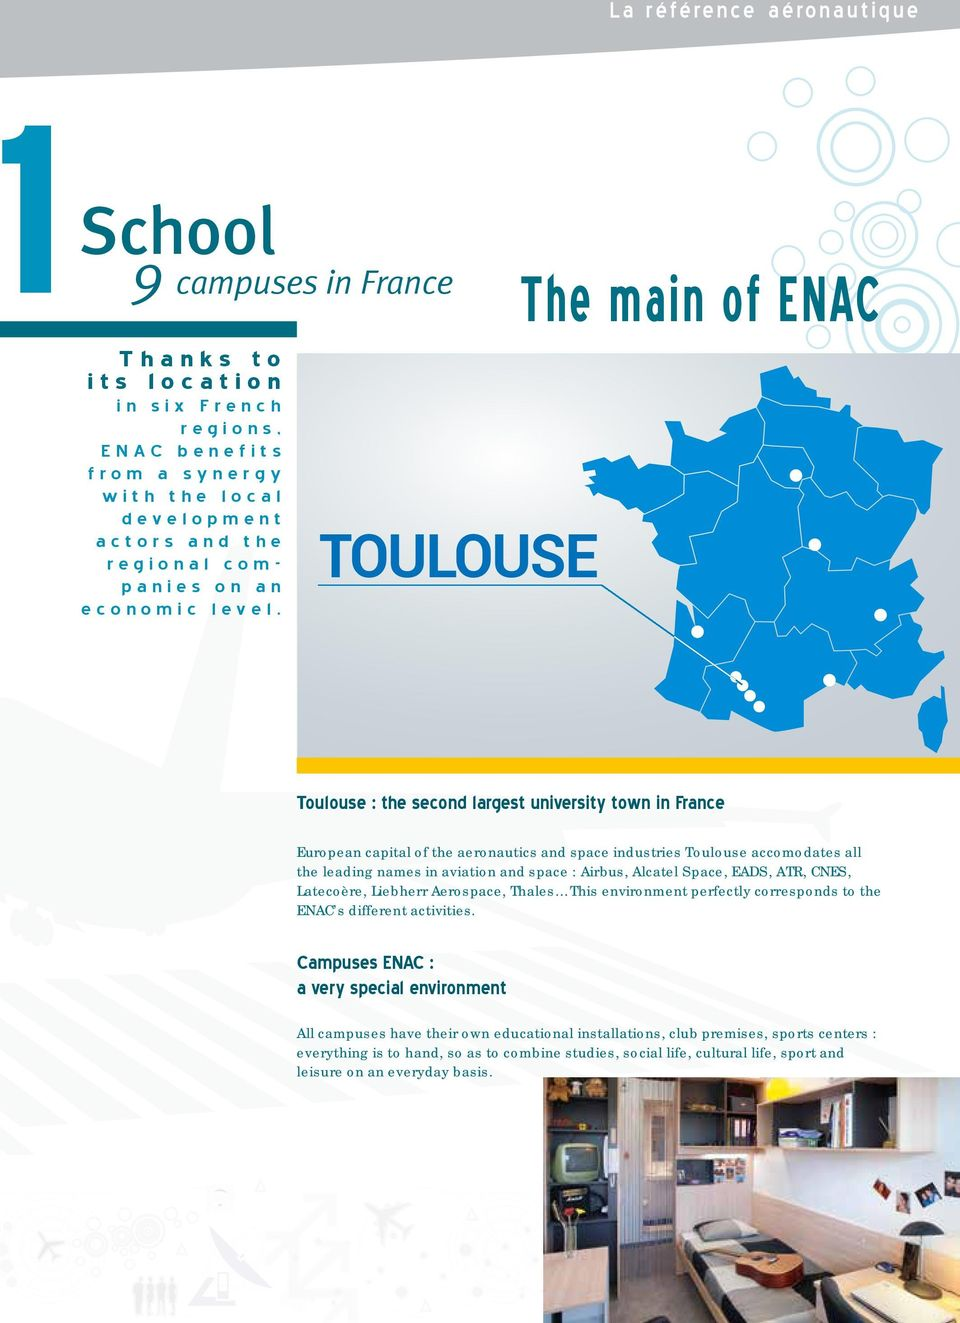 TOULOUSE Toulouse : the second largest university town in France European capital of the aeronautics and space industries Toulouse accomodates all the leading names in aviation and space : Airbus,